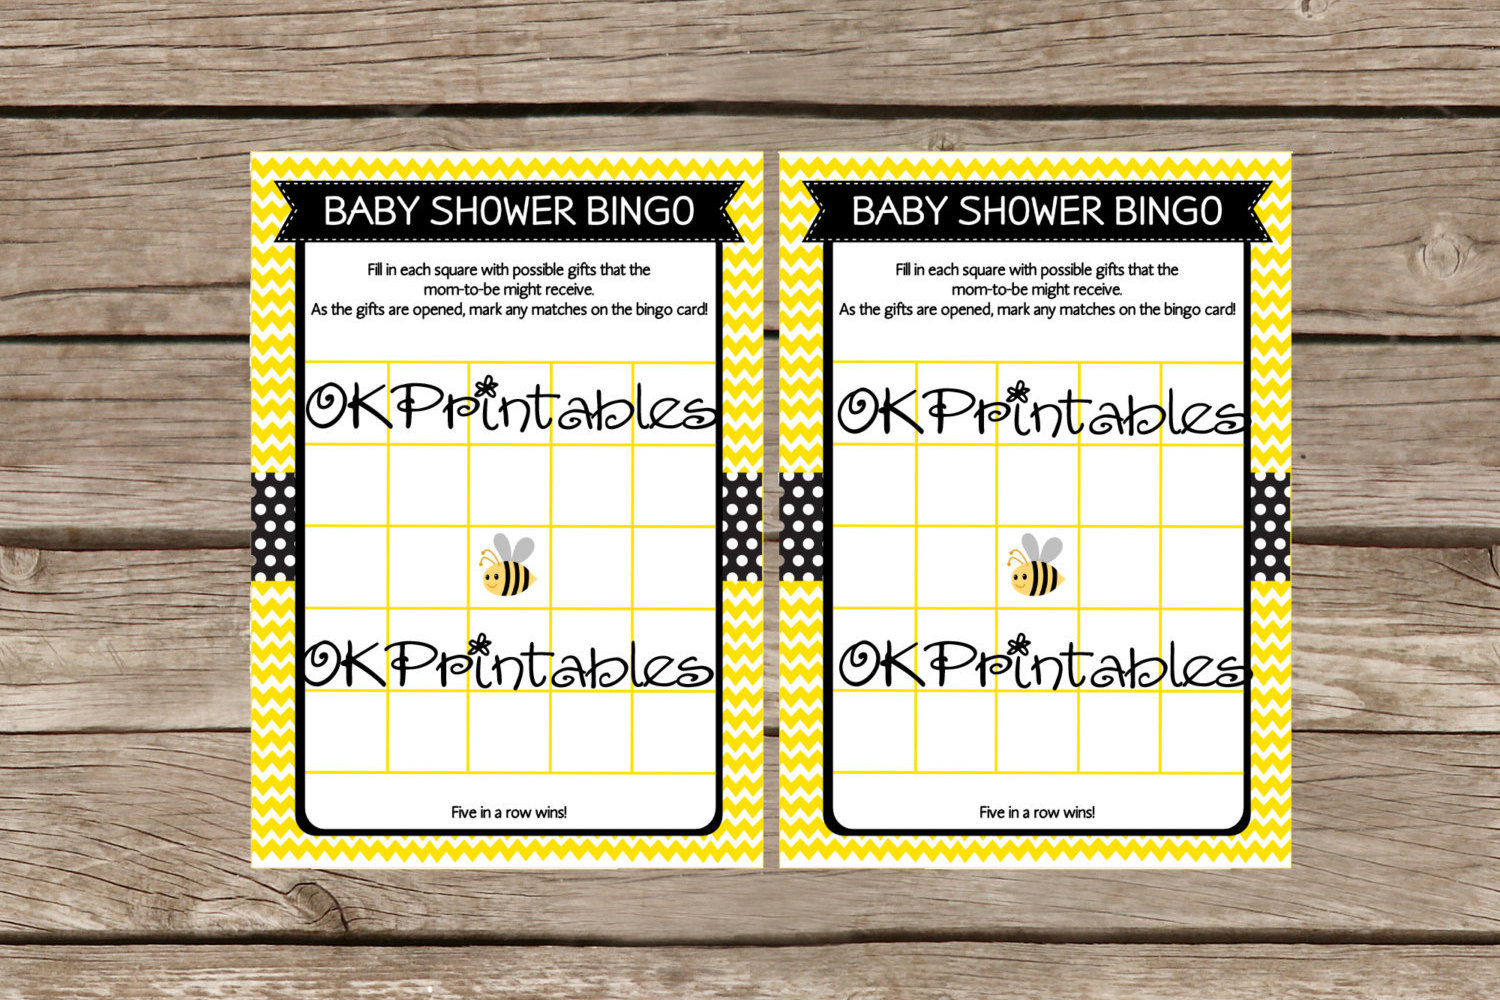 Bumble Bee Baby Shower Bingo Cards